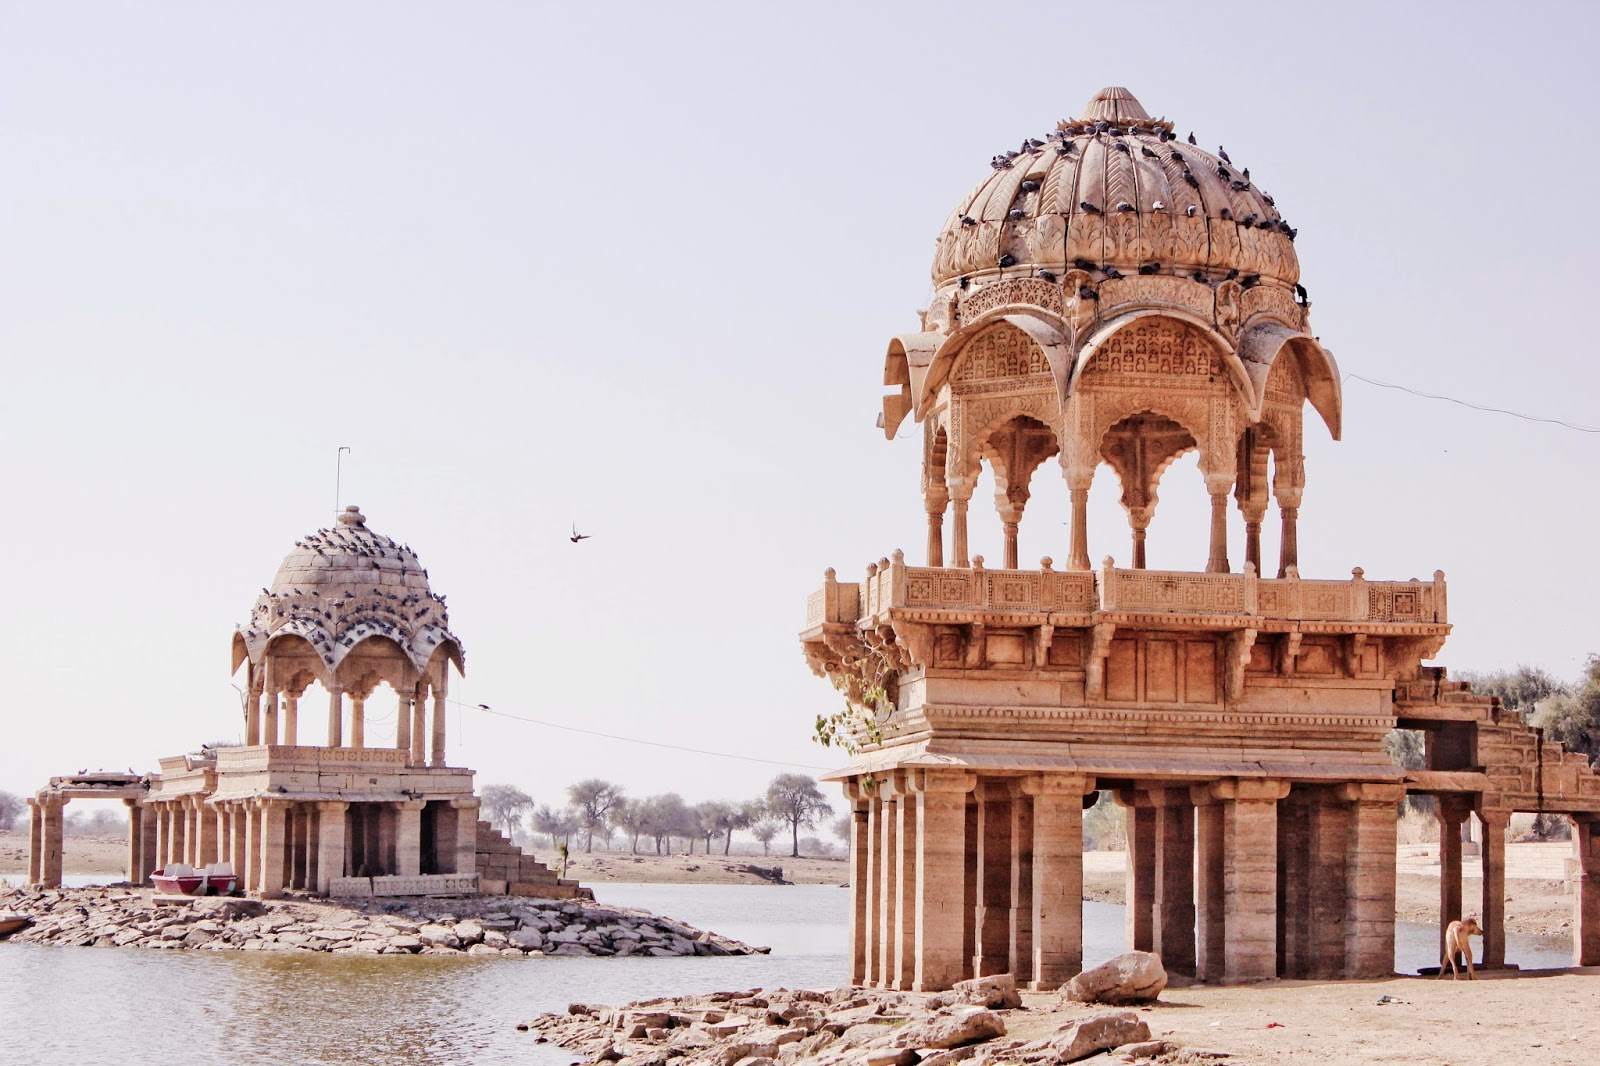 View shrines at the Gadisar Lake, Jaisalmer